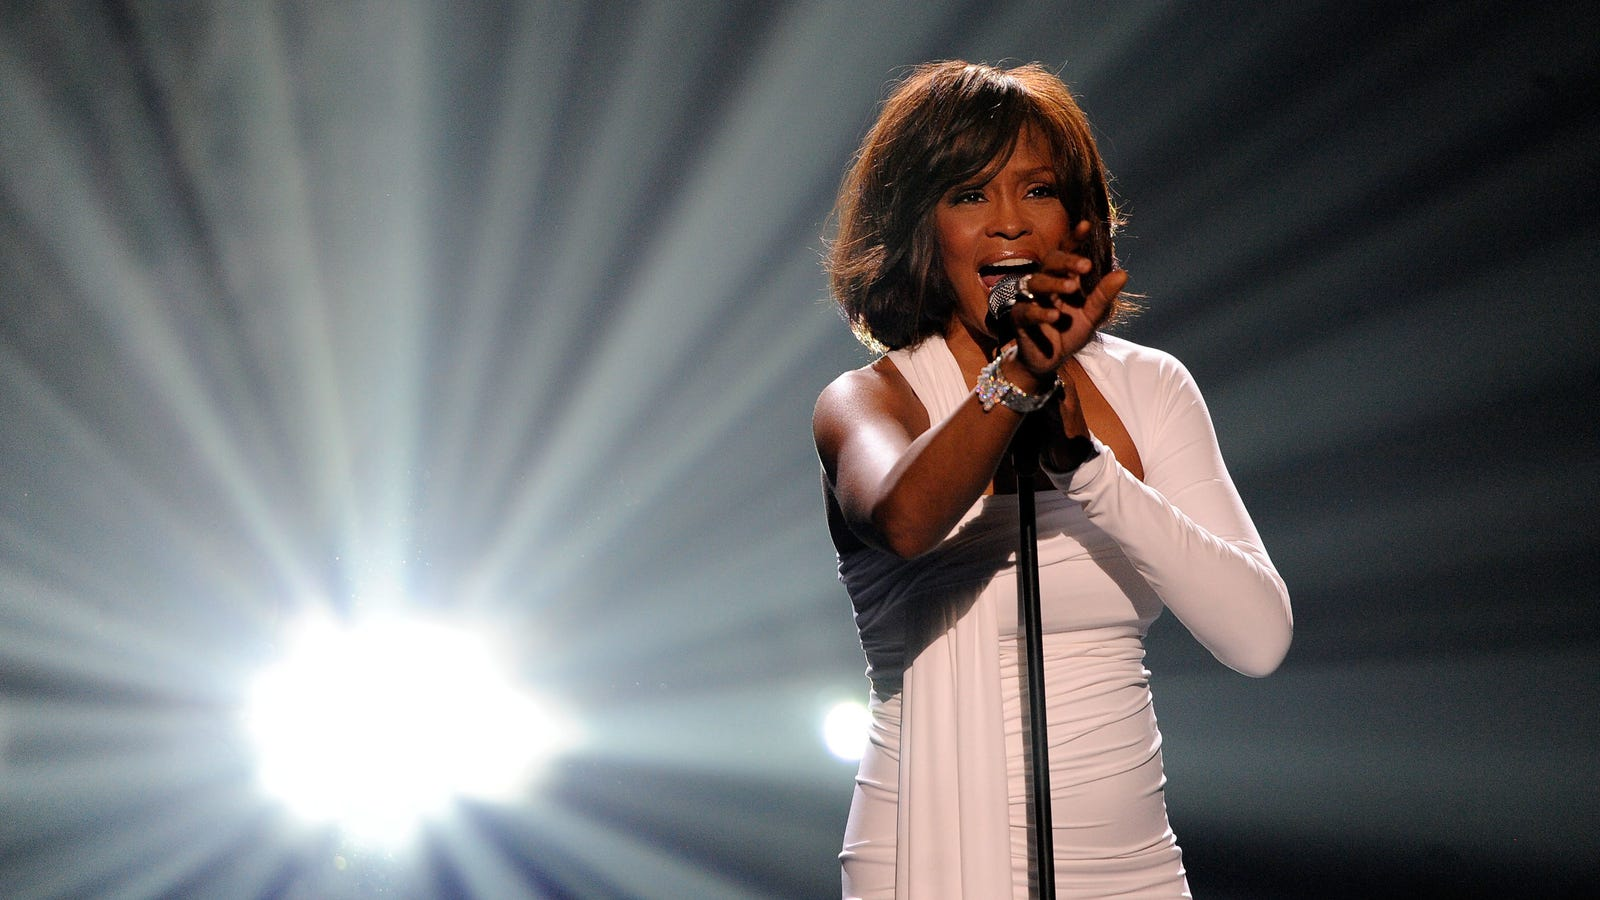 Whitney Houston will soon become a hologram - The A.V. Club